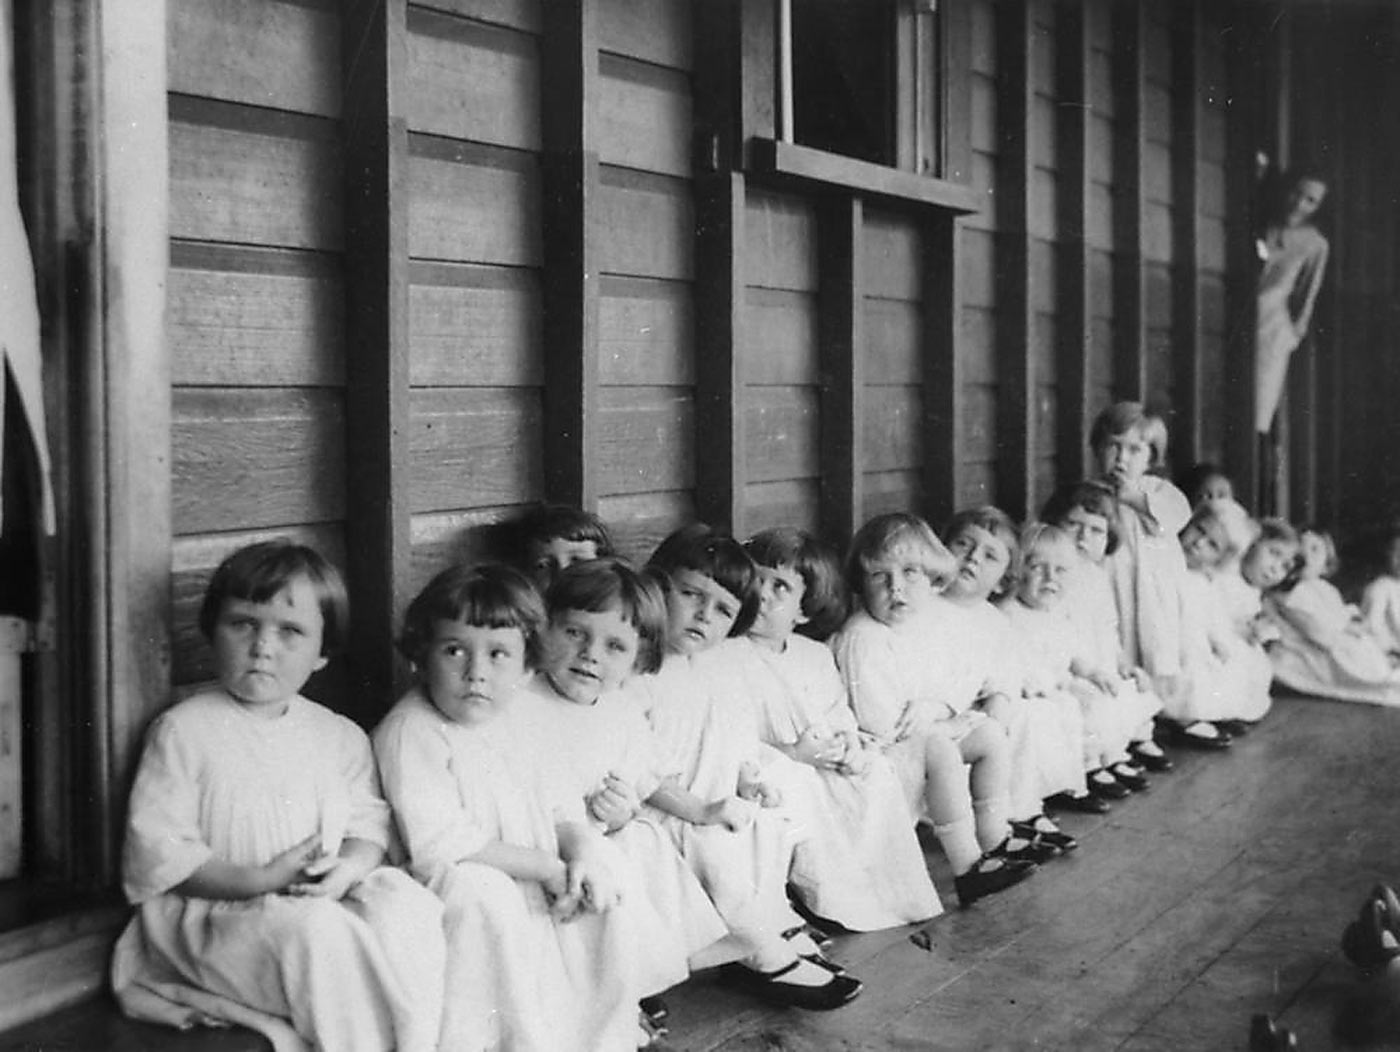 Black and white photograph showing a group of young girls sitting on a timber verandah. The girls wear long, white dresses and black shoes. An older person leans out of a door at the far end of the photograph. - click to view larger image